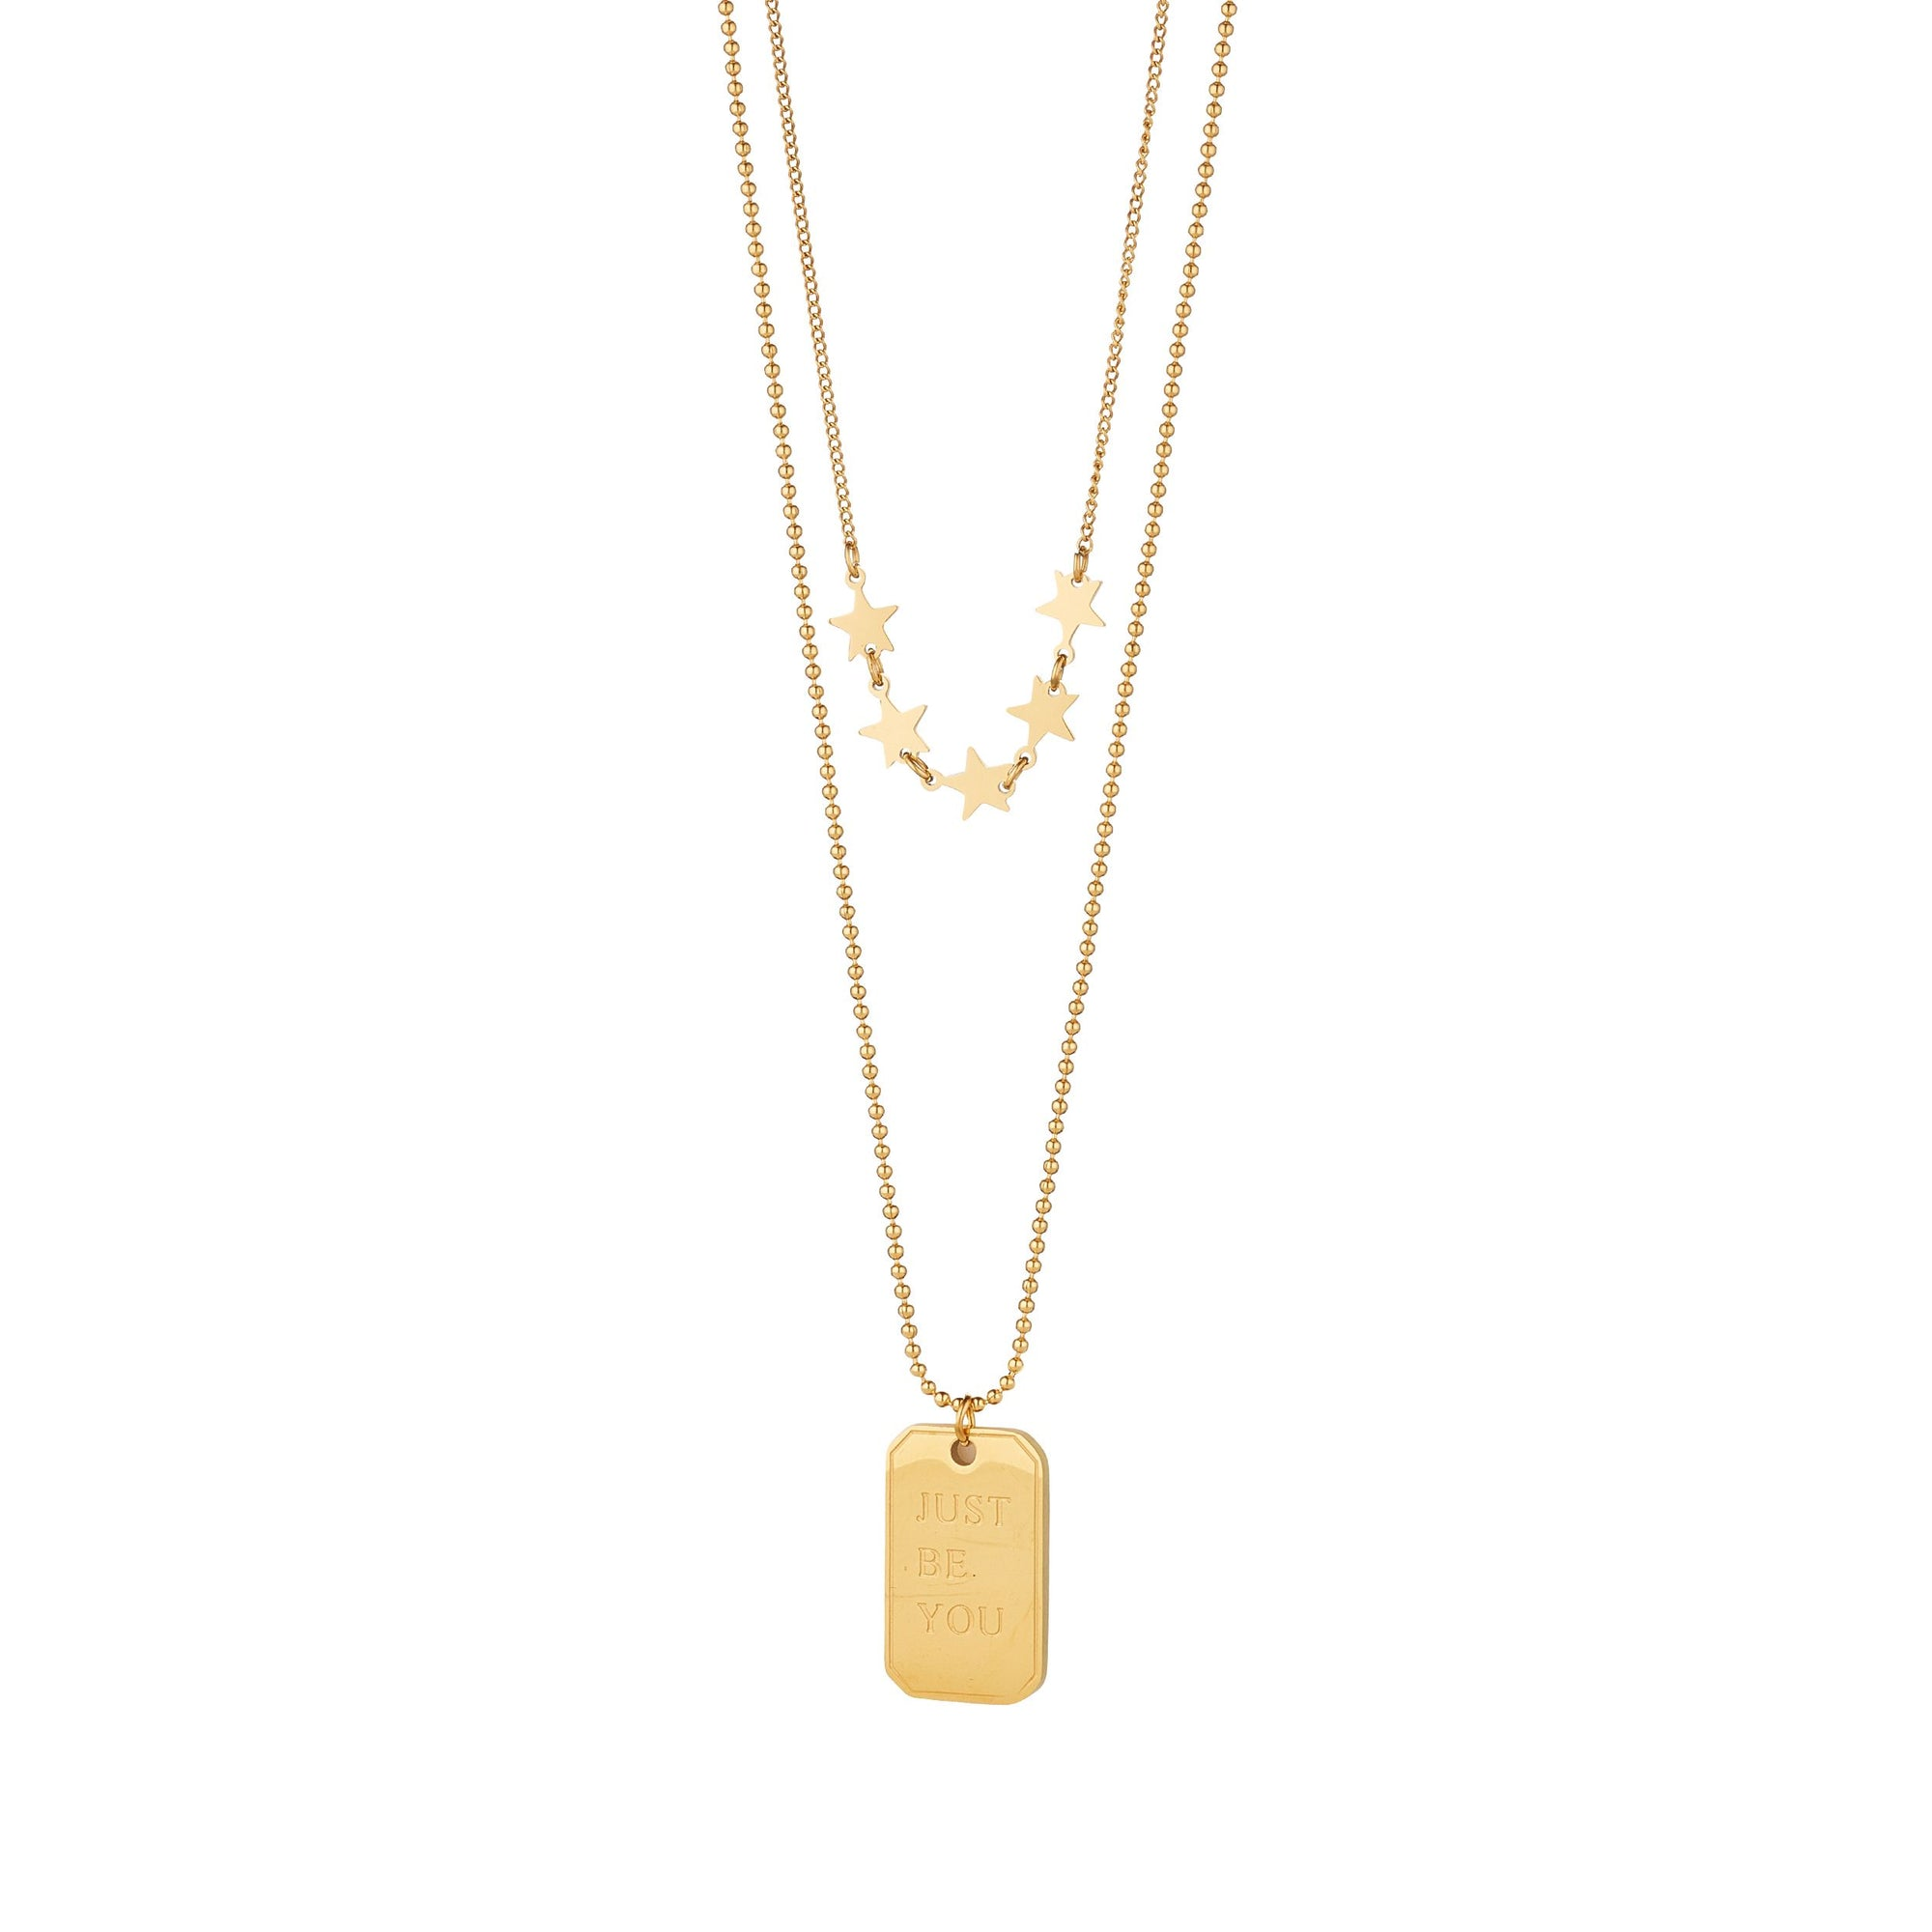 Knight & Day Gold Necklace